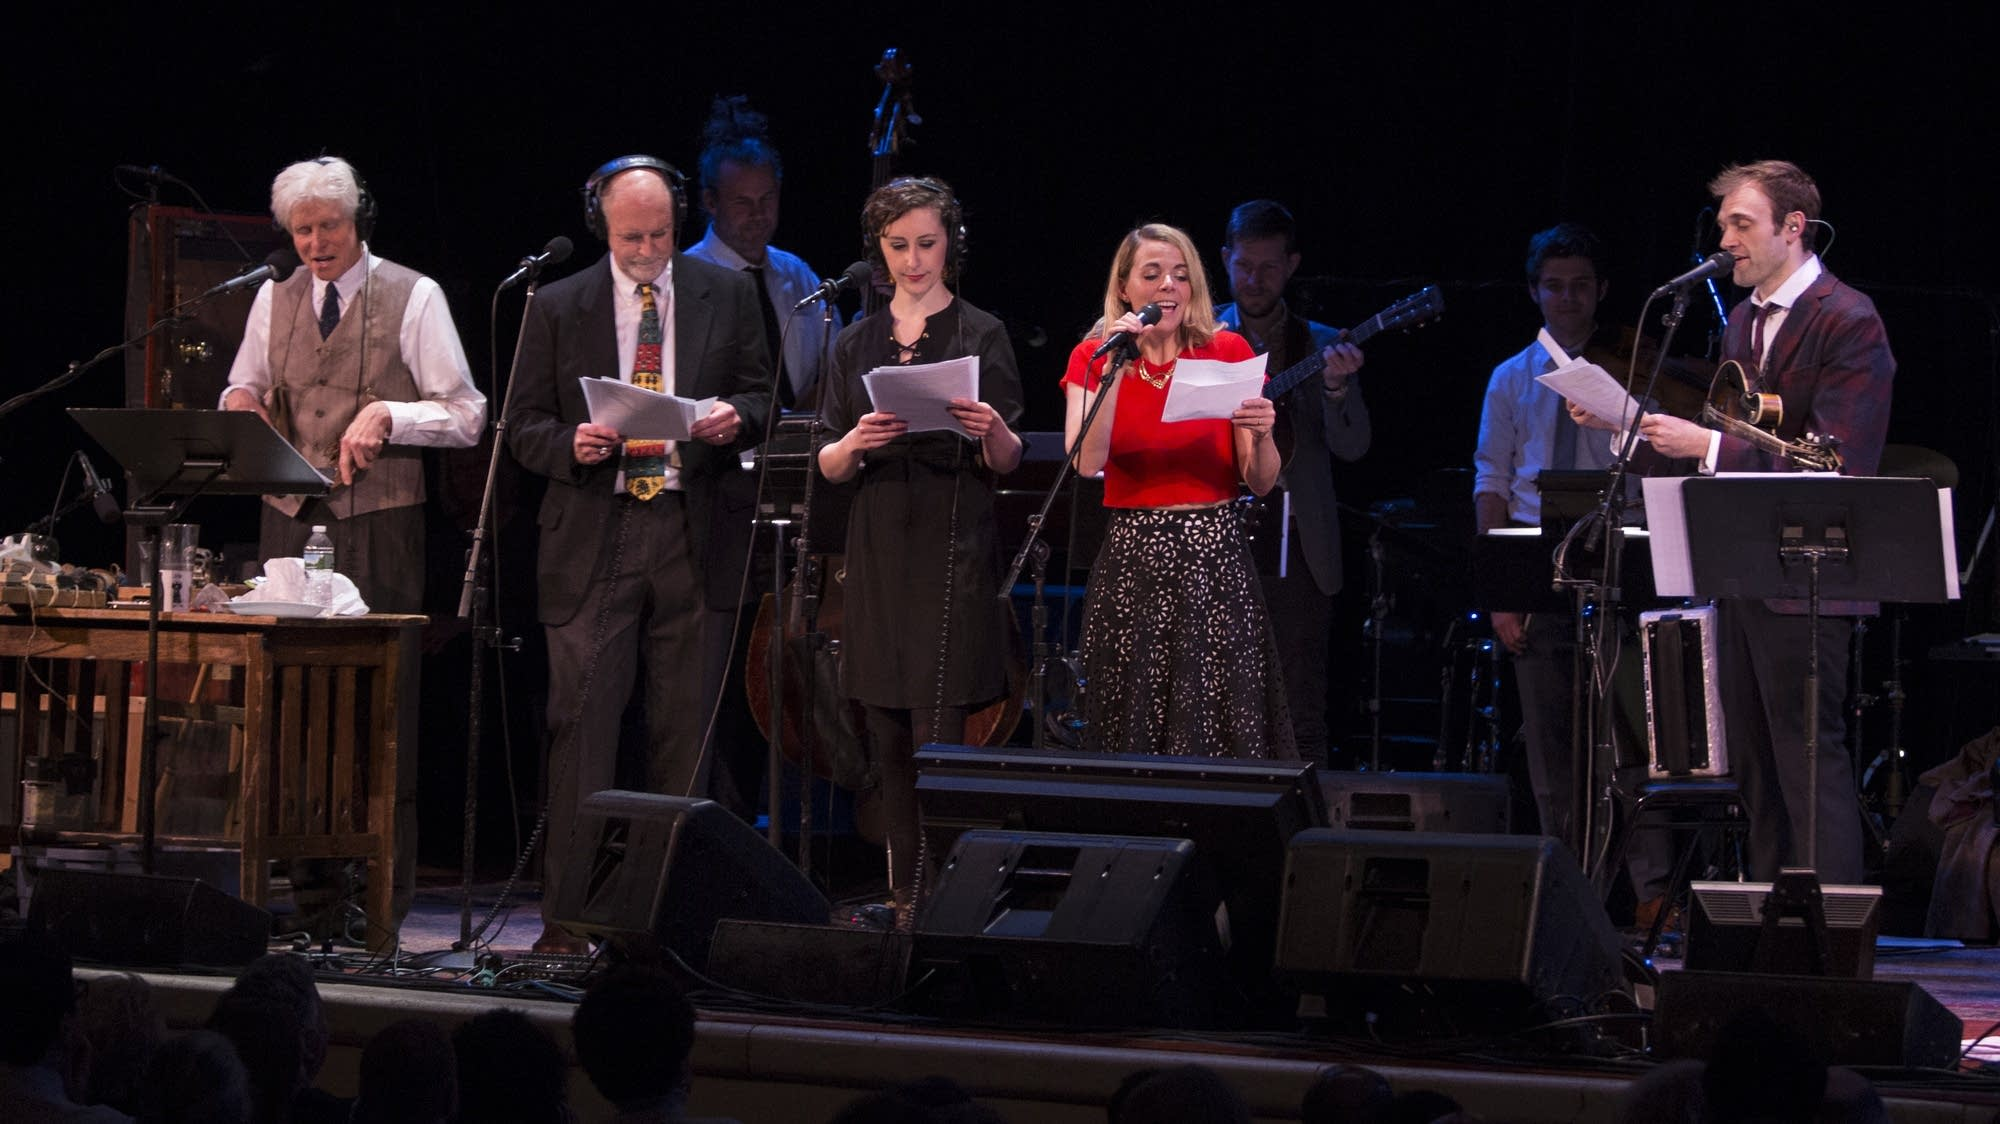 Fred Newman, Tim Russell, Serena Brook, Aoife O'Donovan, and Chris Thile